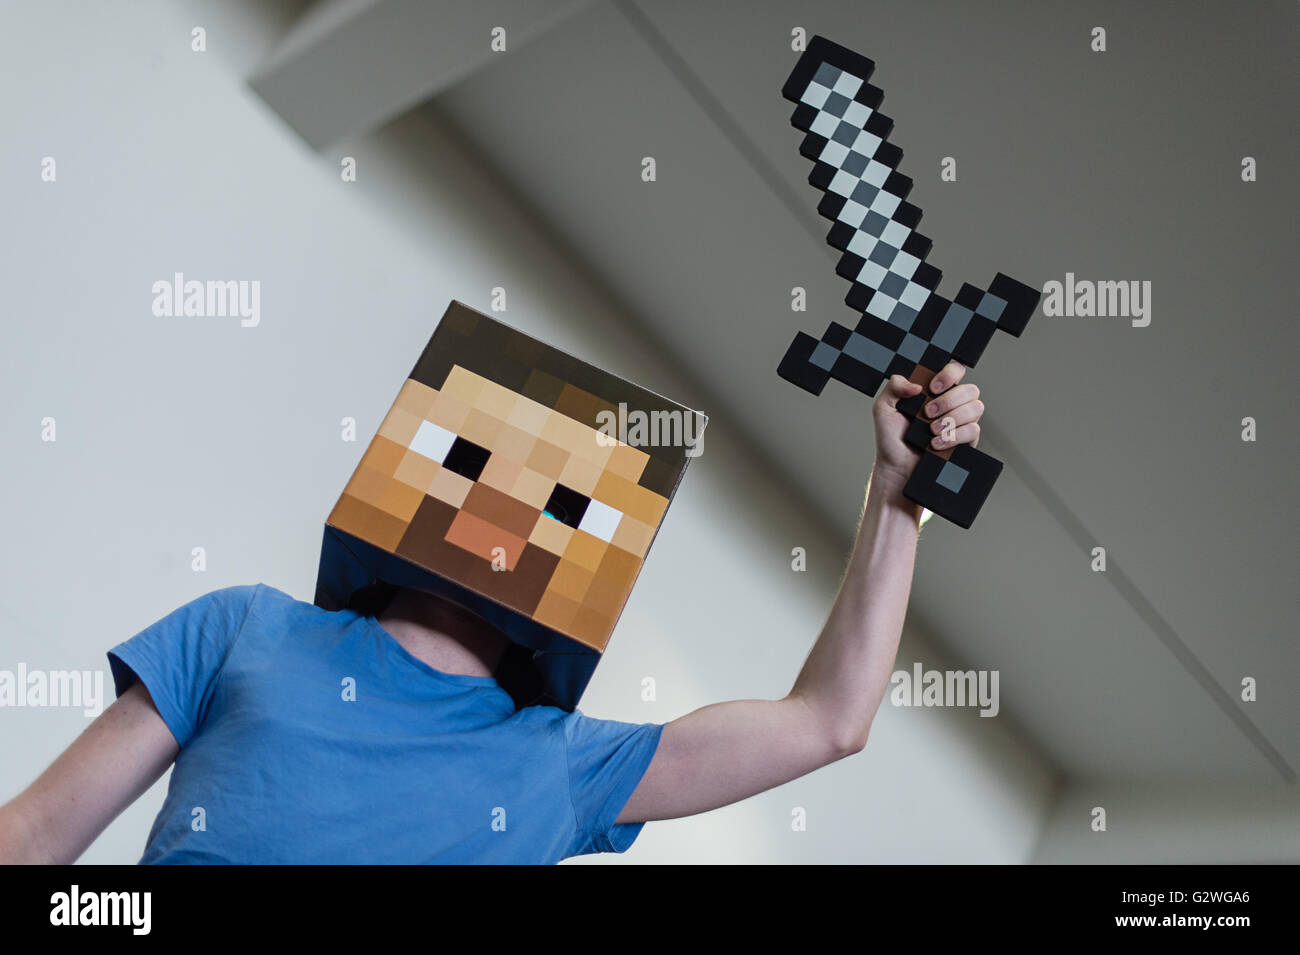 Hanover, Germany. 04th June, 2016. A man dressed as the game character of the computer game Minecraft poses at the - Stock Image